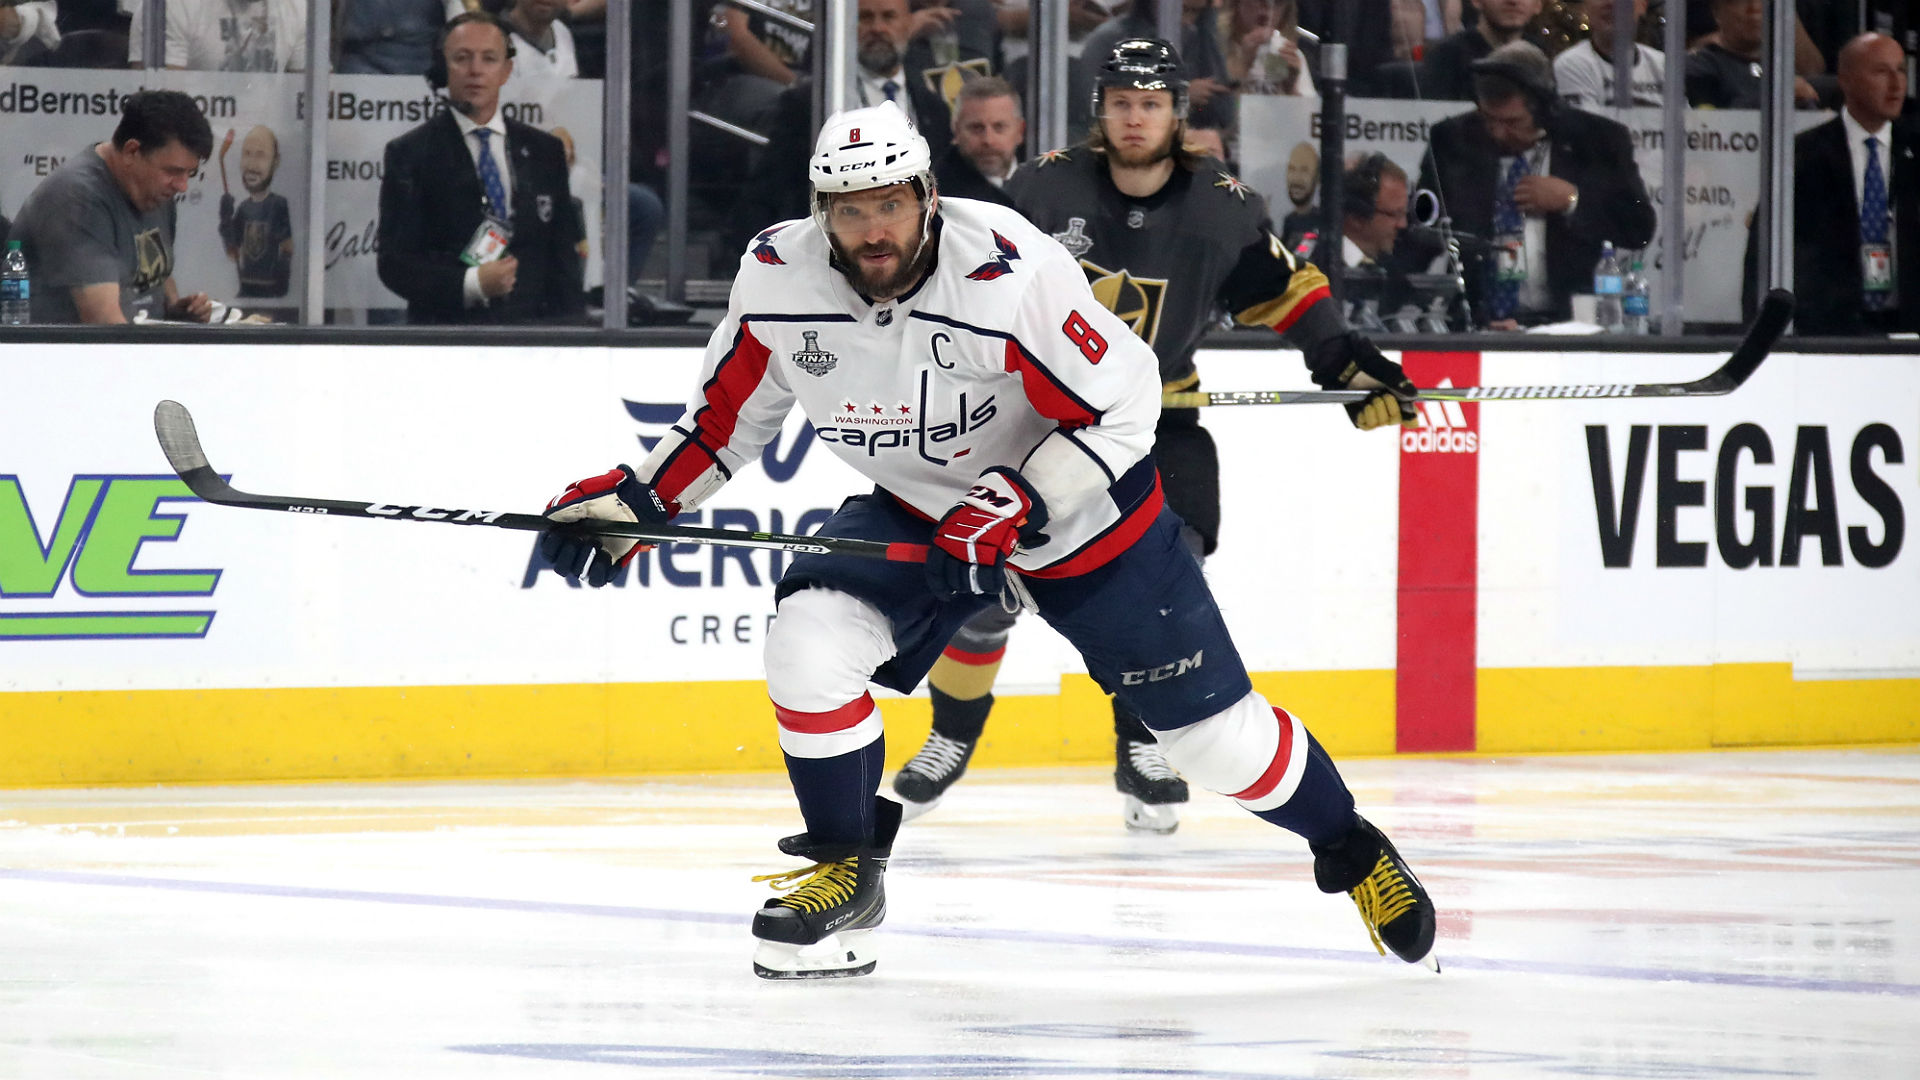 Stanley Cup Final 2018: Alex Ovechkin scores 15th playoff goal, matching Sidney Crosby's best ...